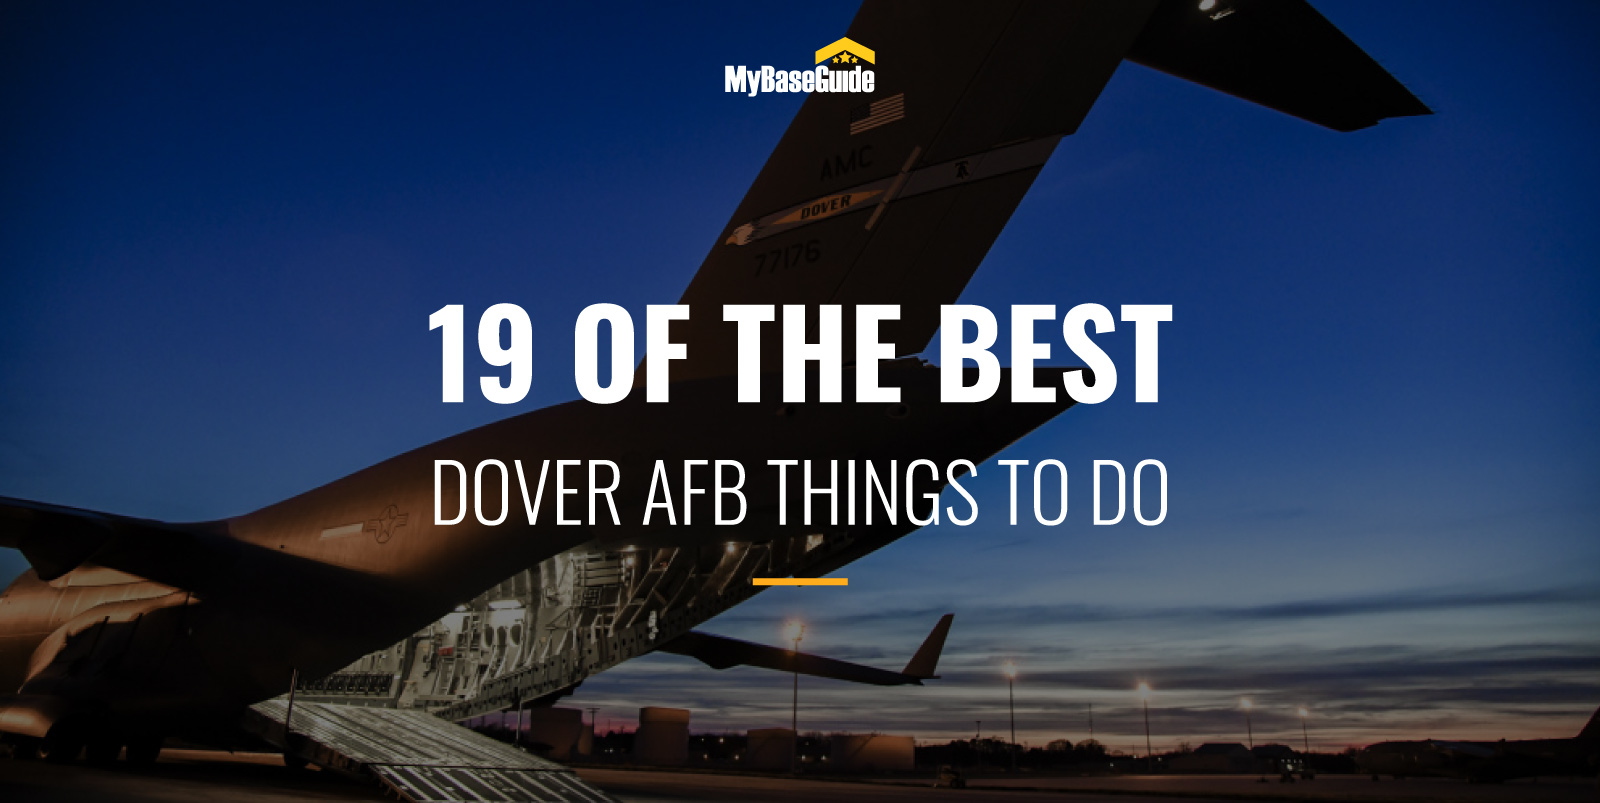 19 Of the Best Dover AFB Things to Do